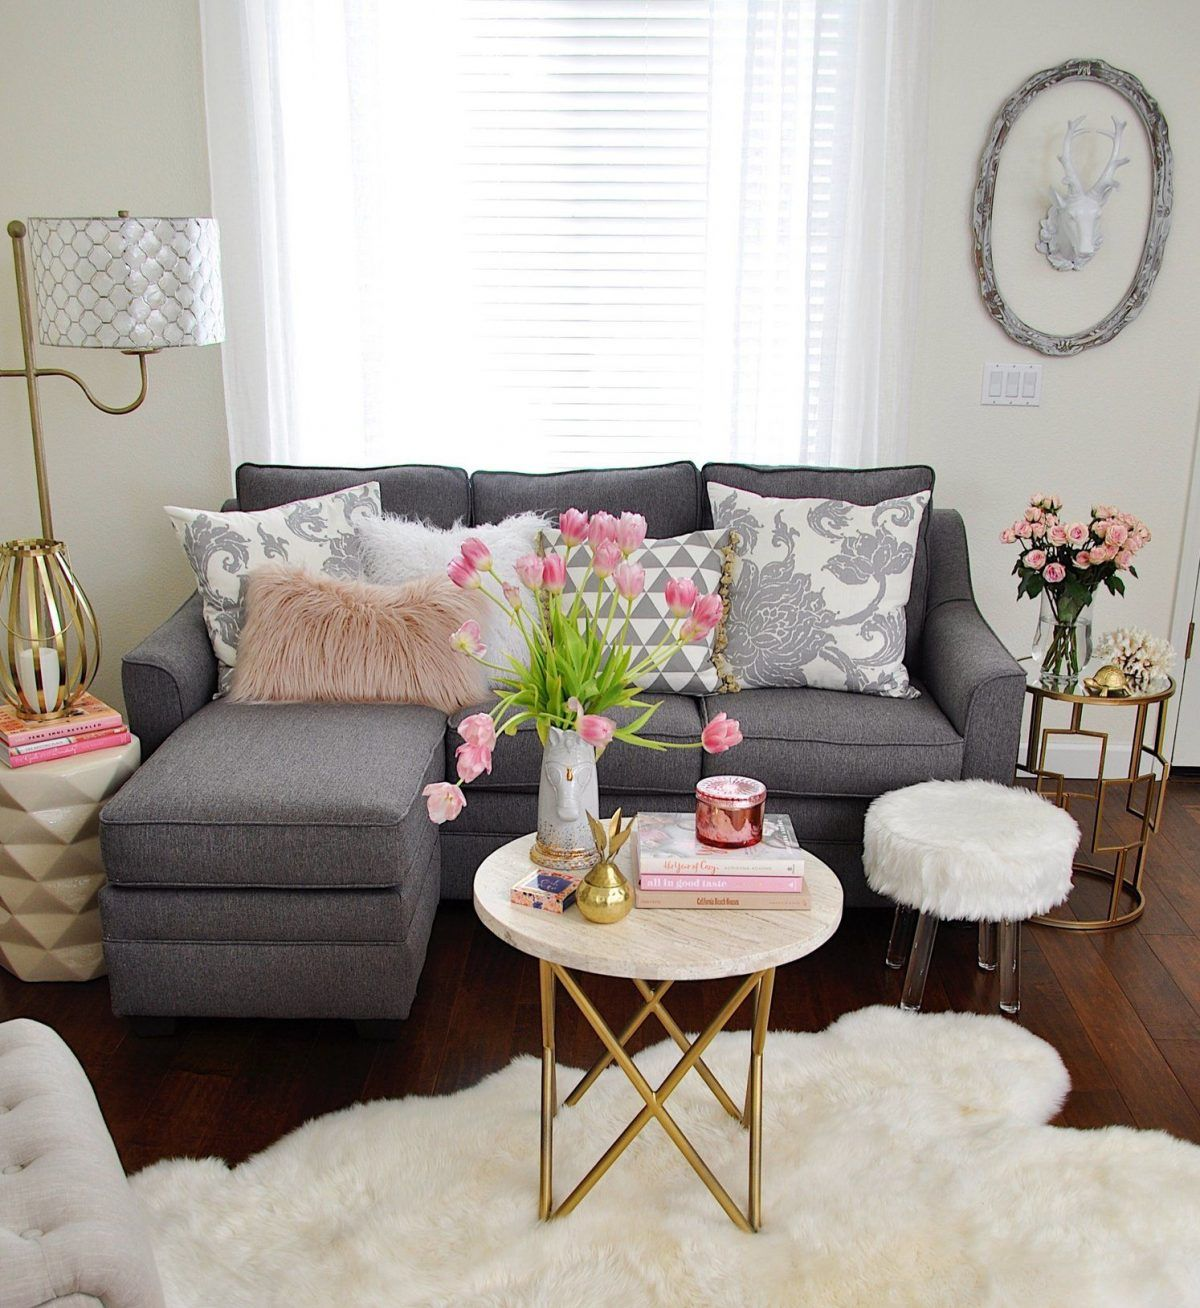 Coffee Table Ideas For Small Apartments Small Living Room Decor